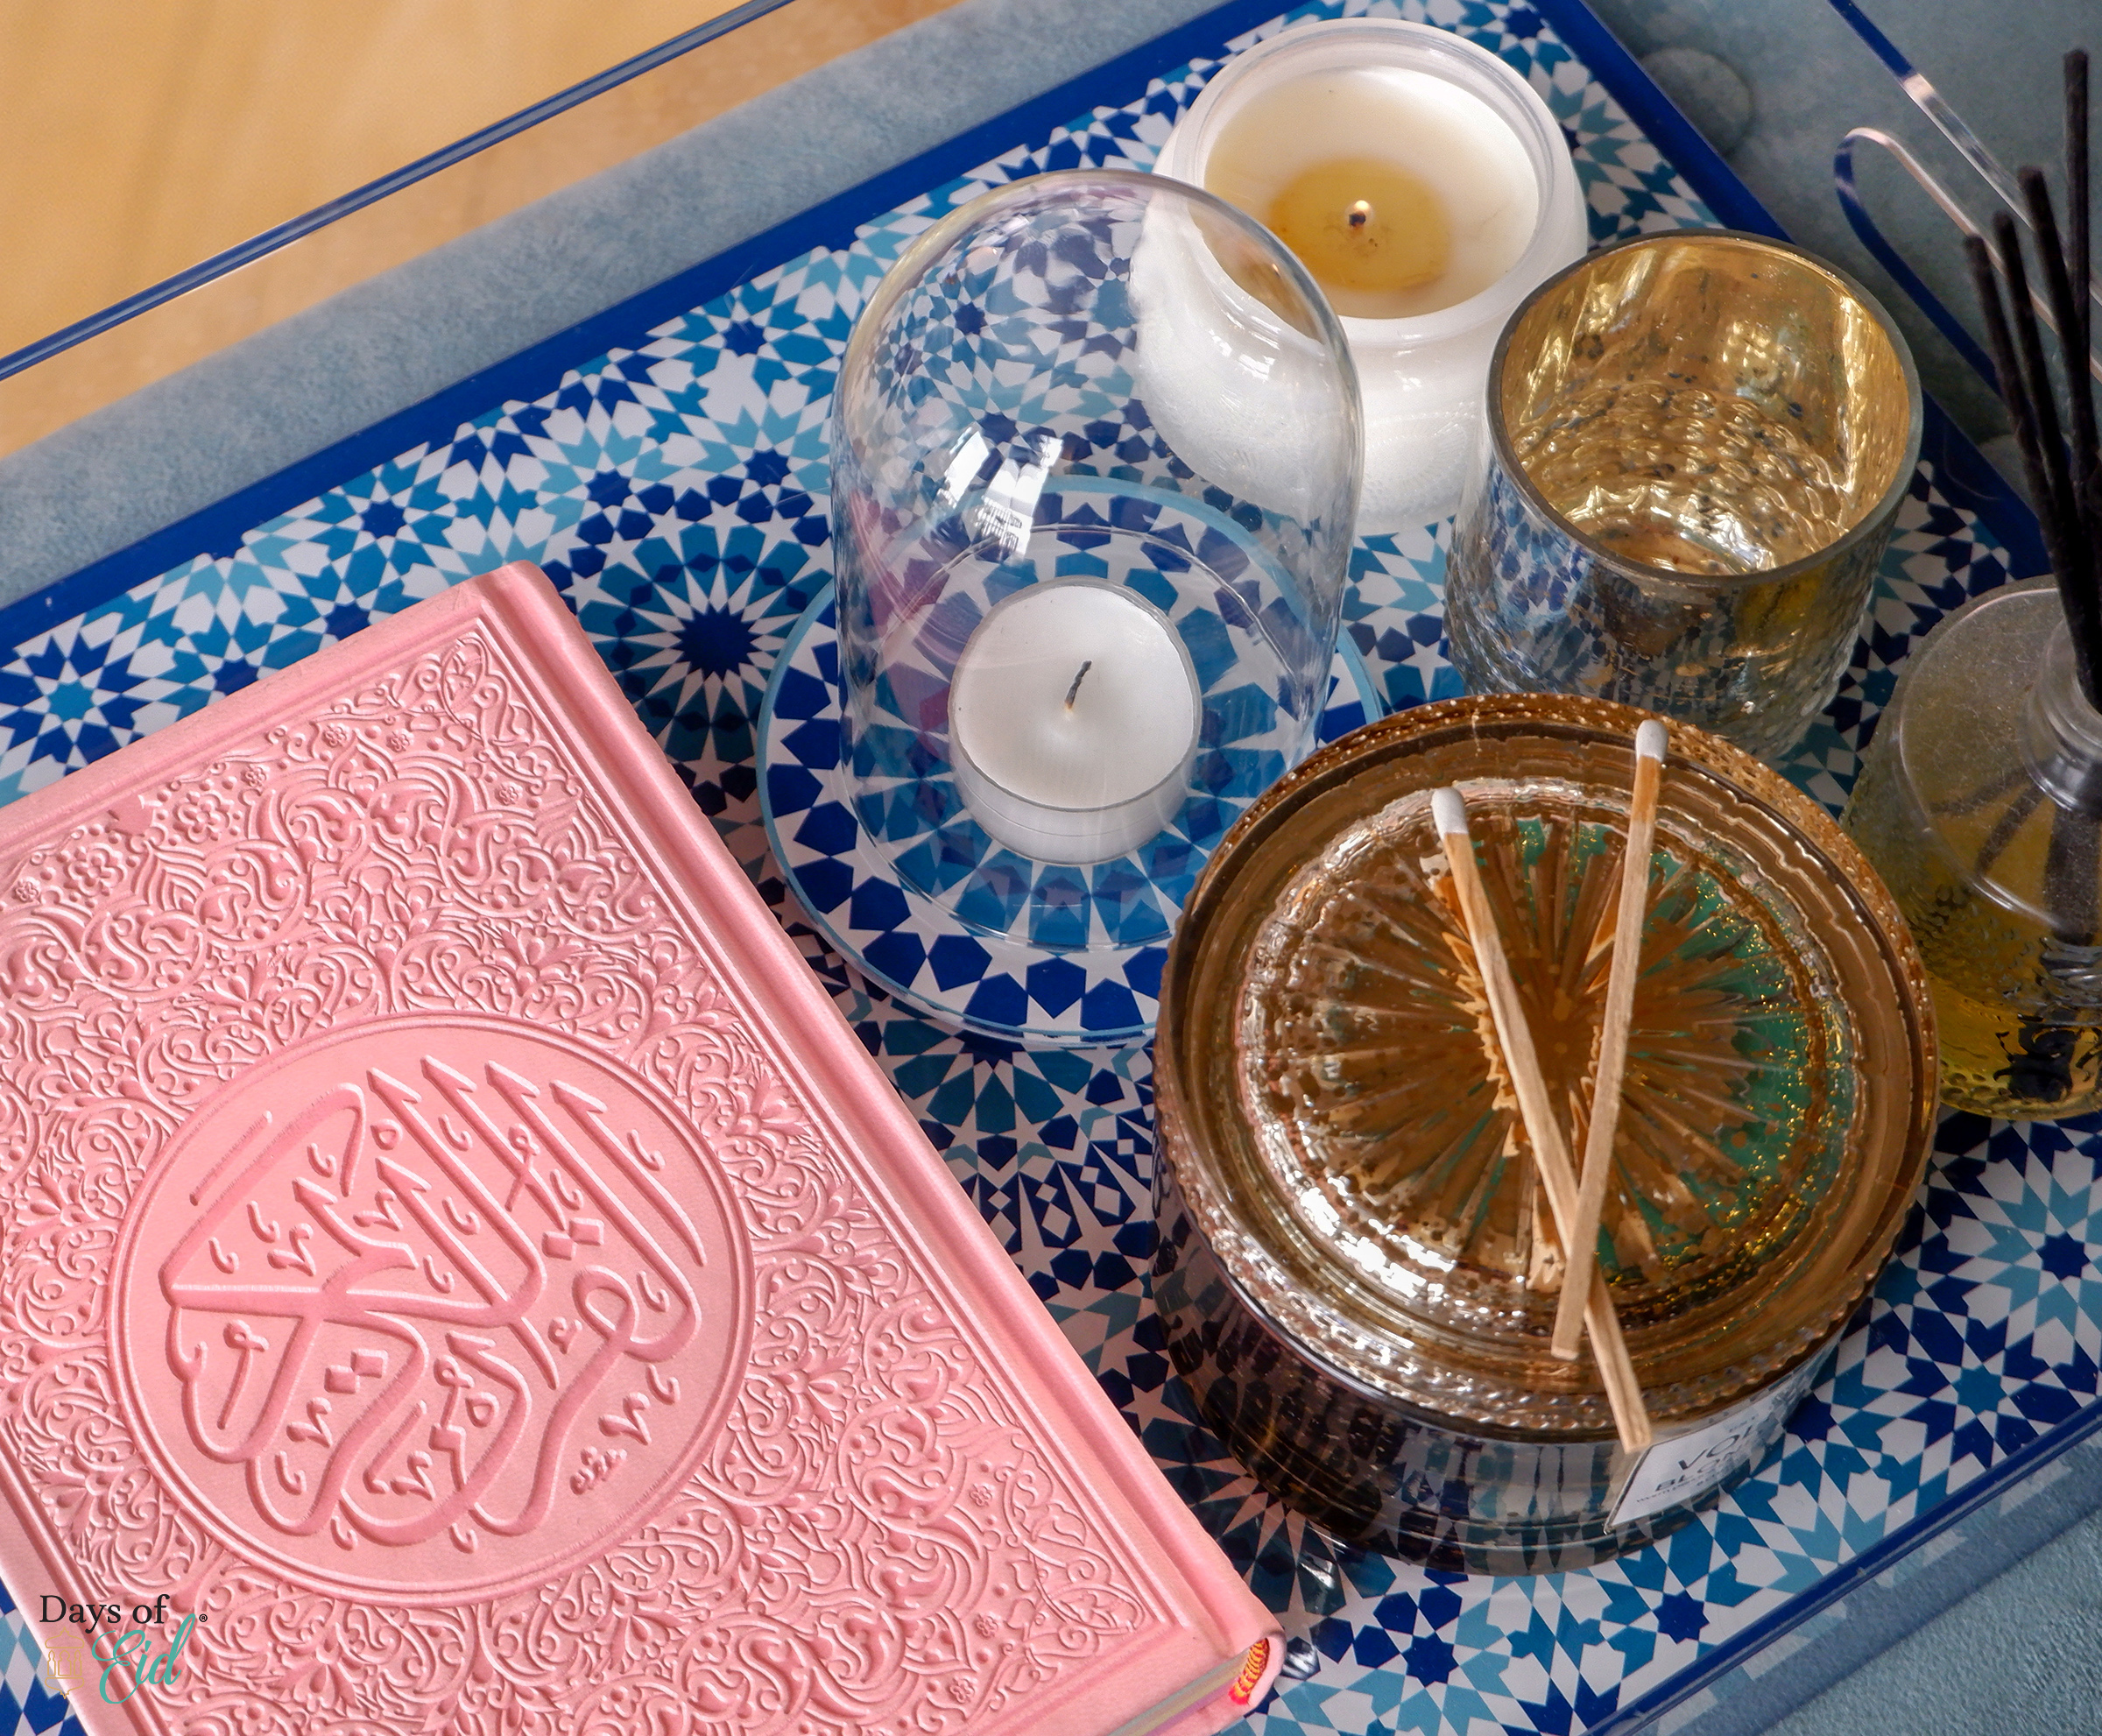 Marrakech acrylic tray  with pink bound Quran and candle accessories